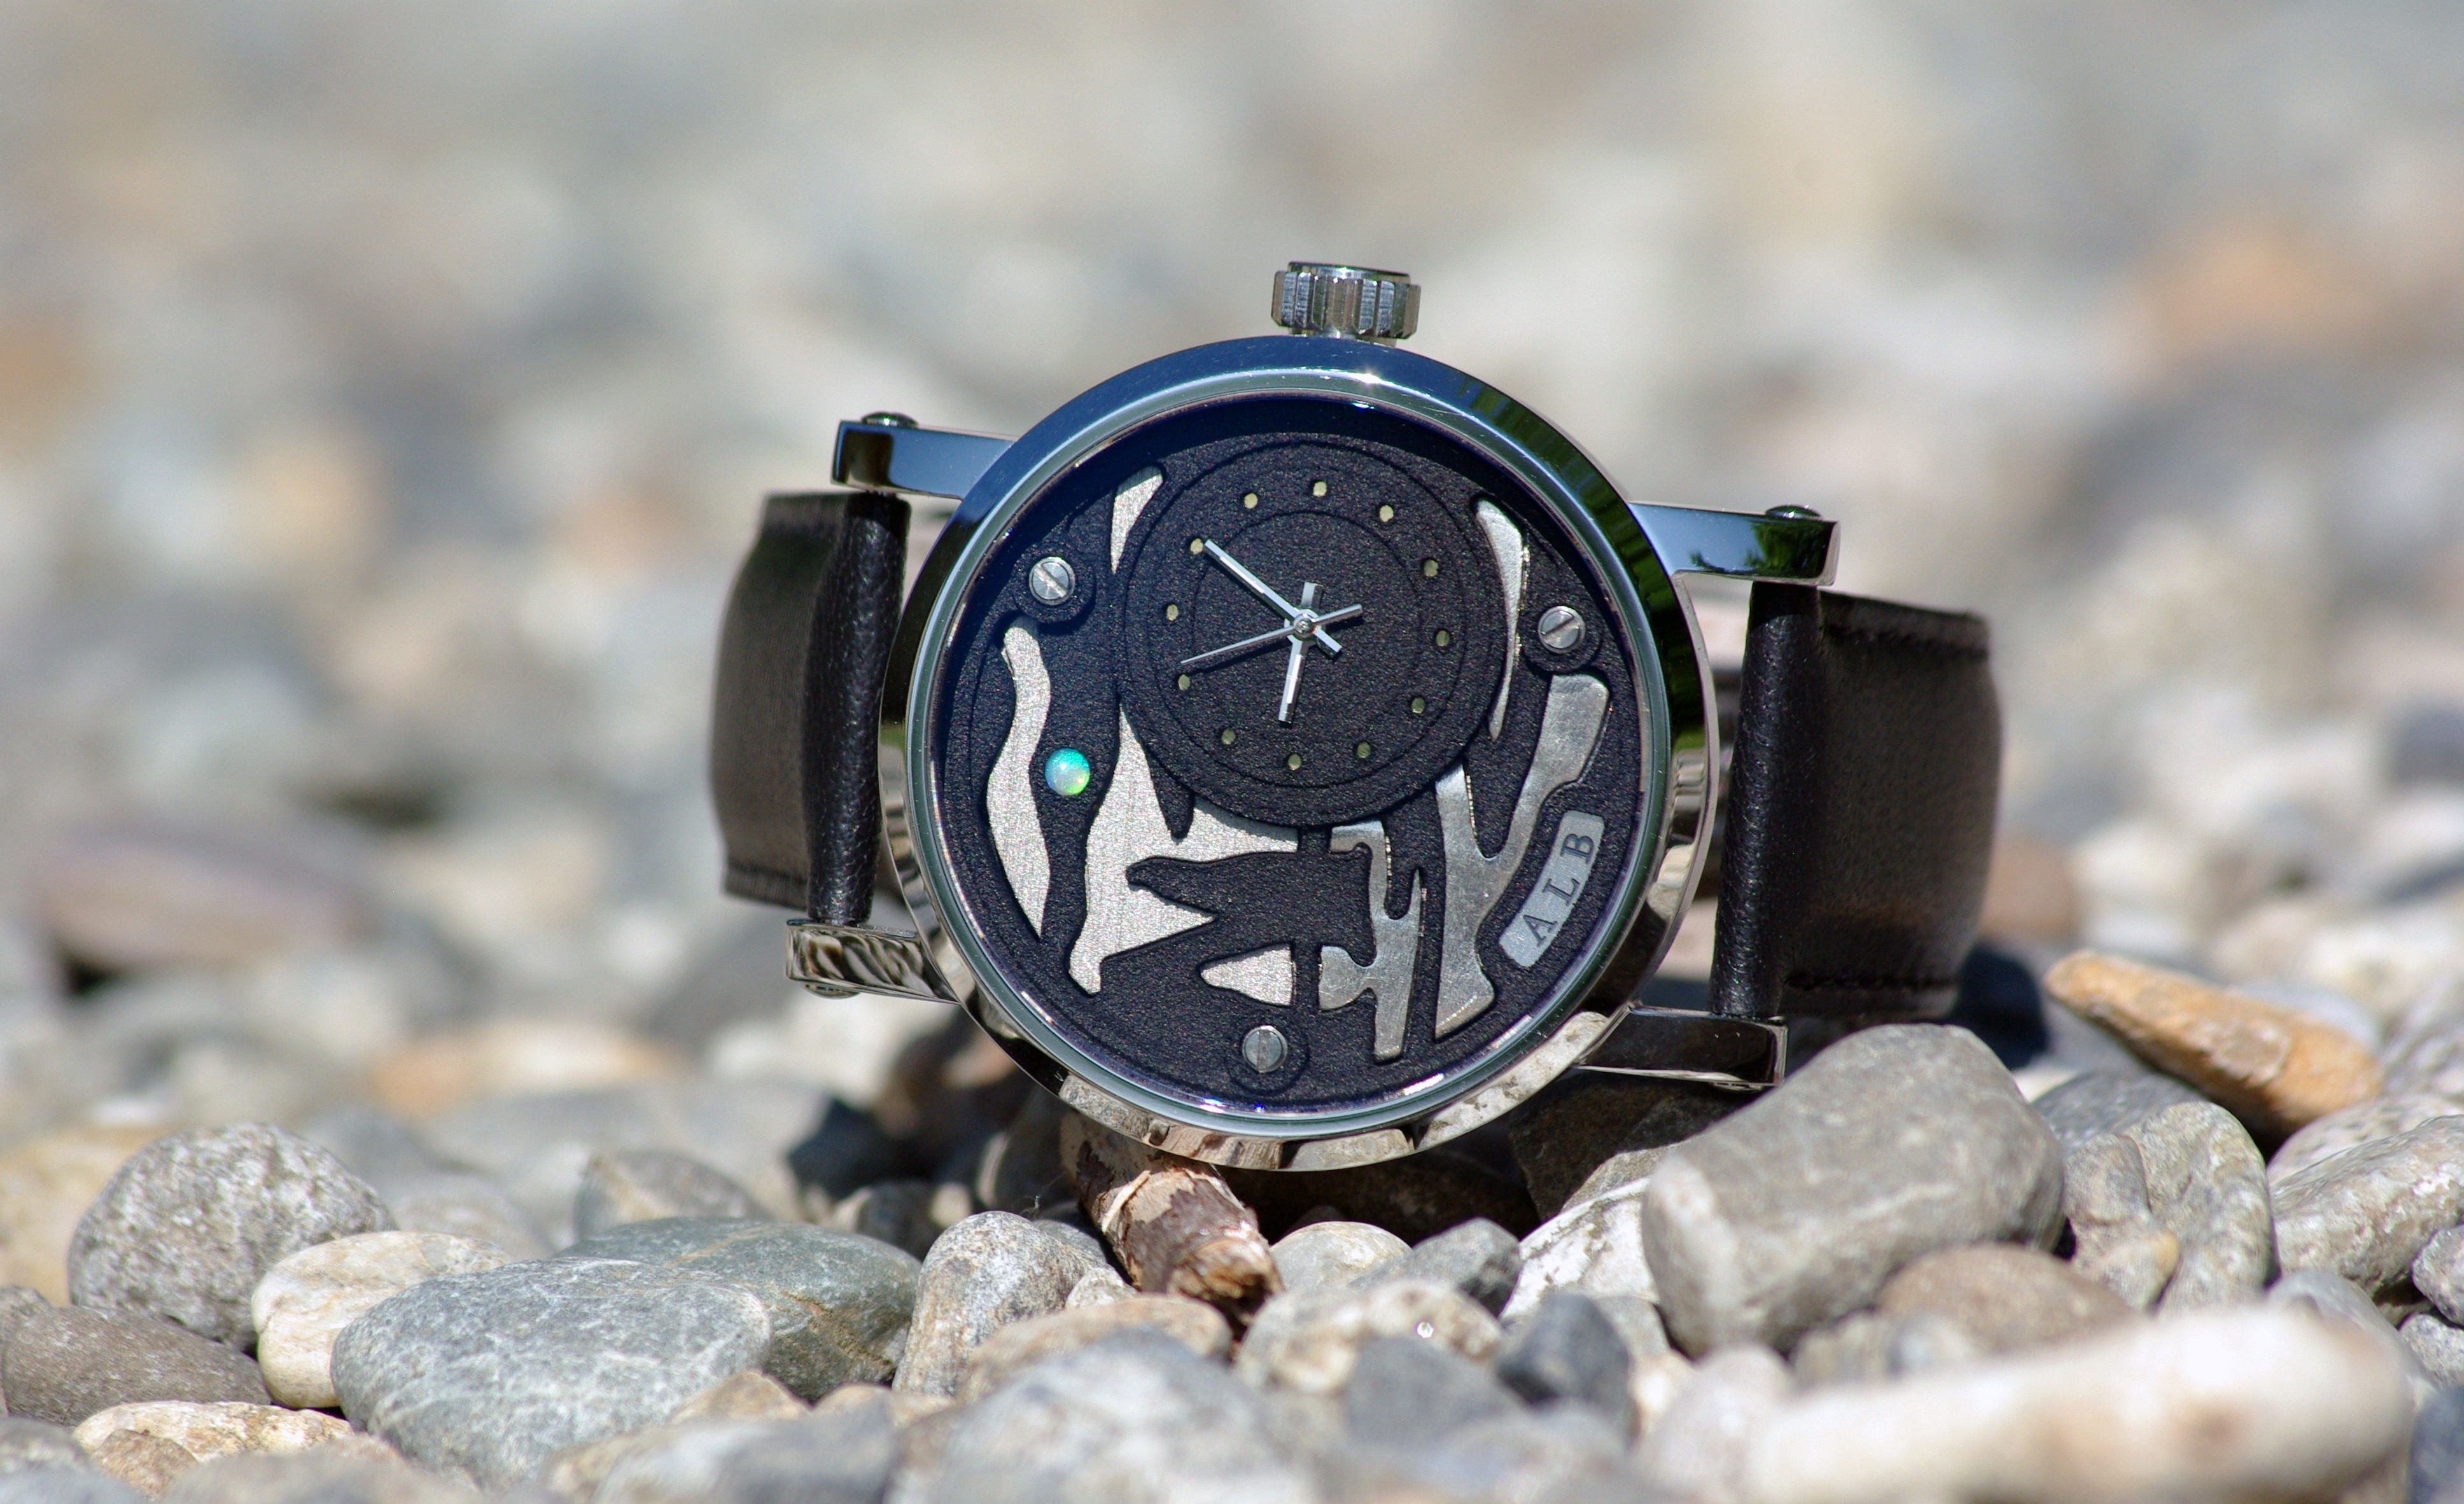 This watch is 3D printed